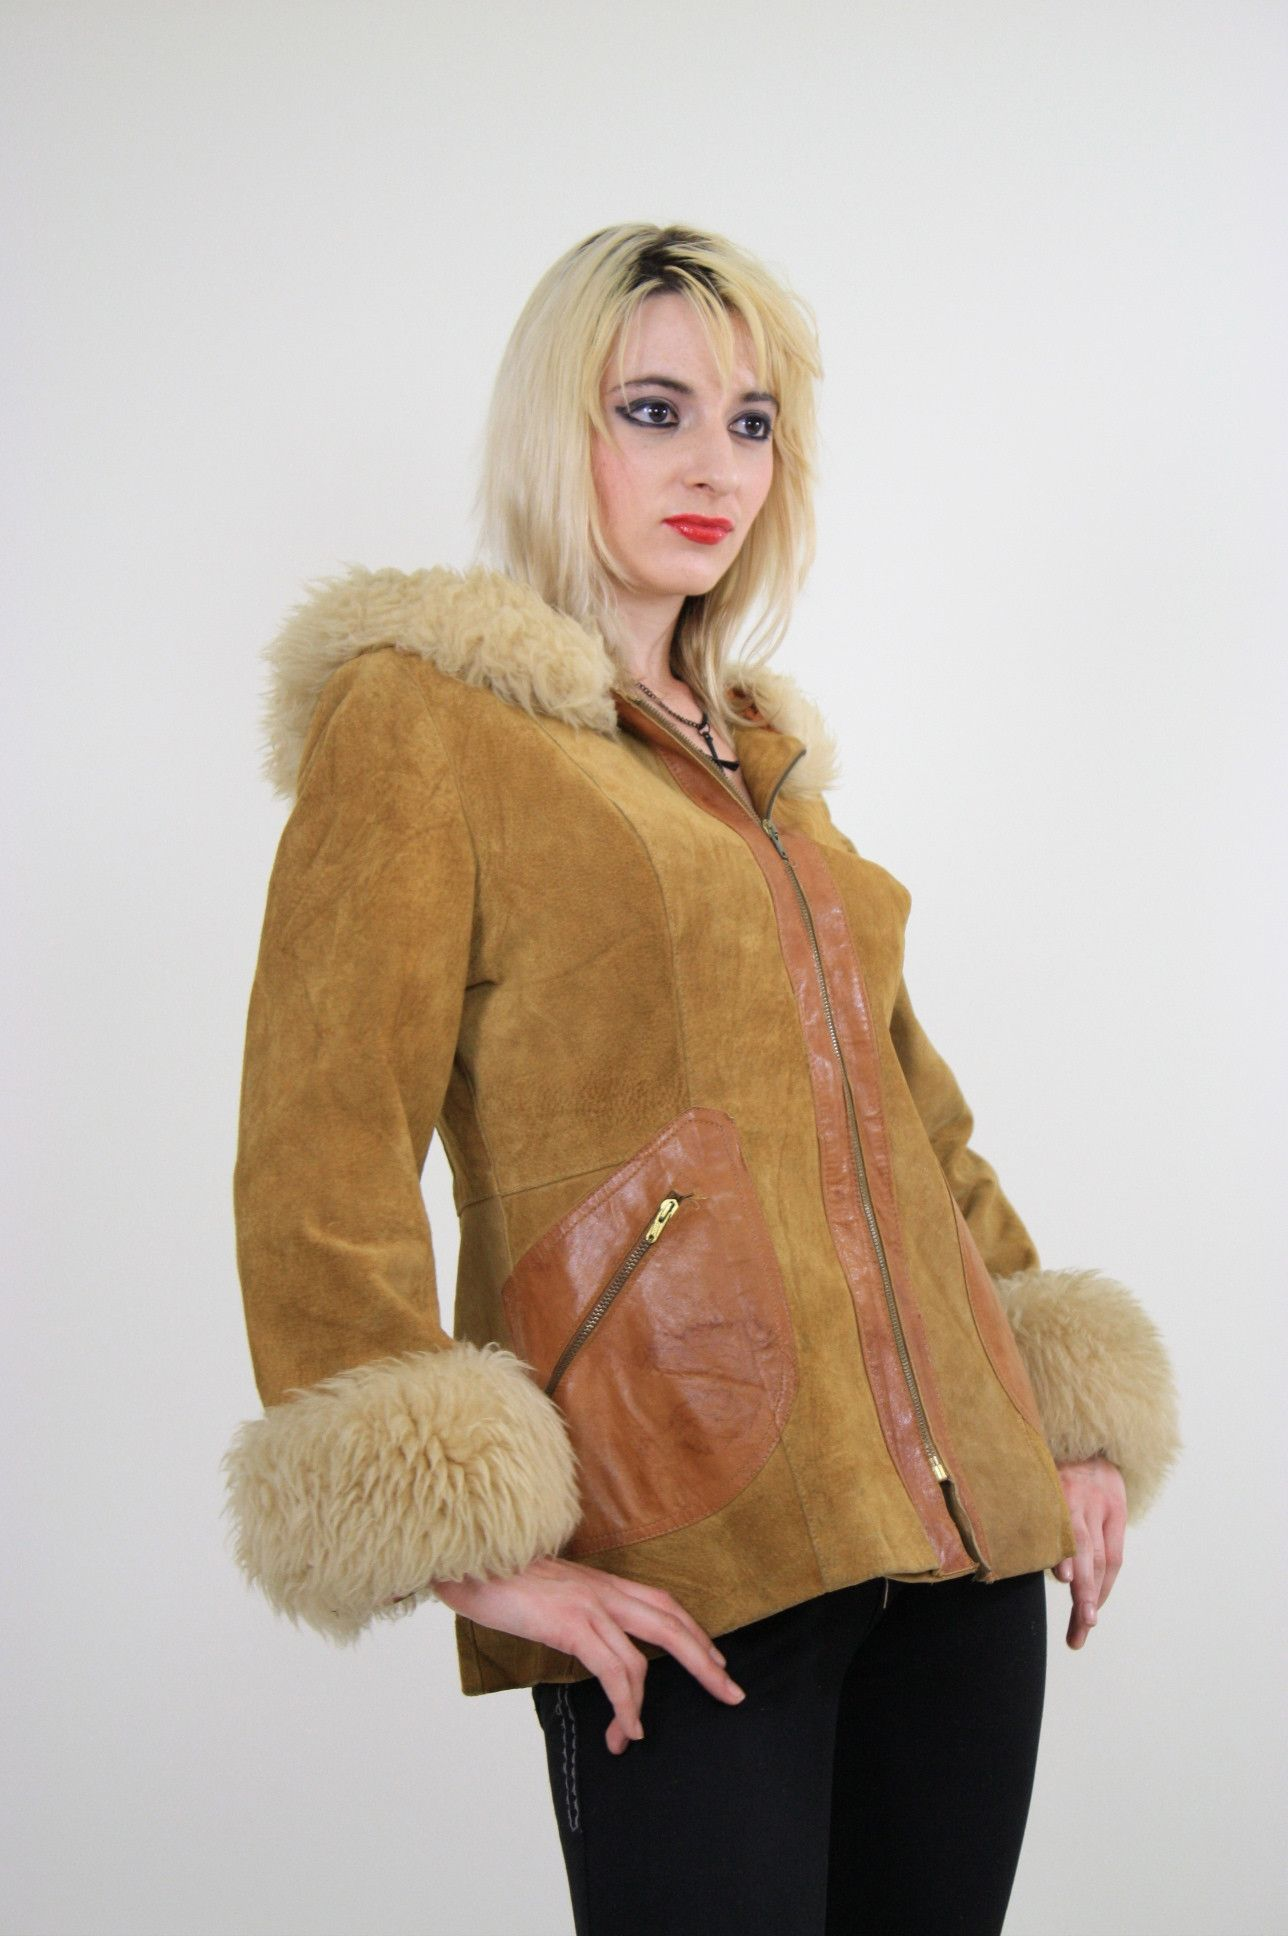 Genuine vintage 70s boho hippie suede leather jacket lamb